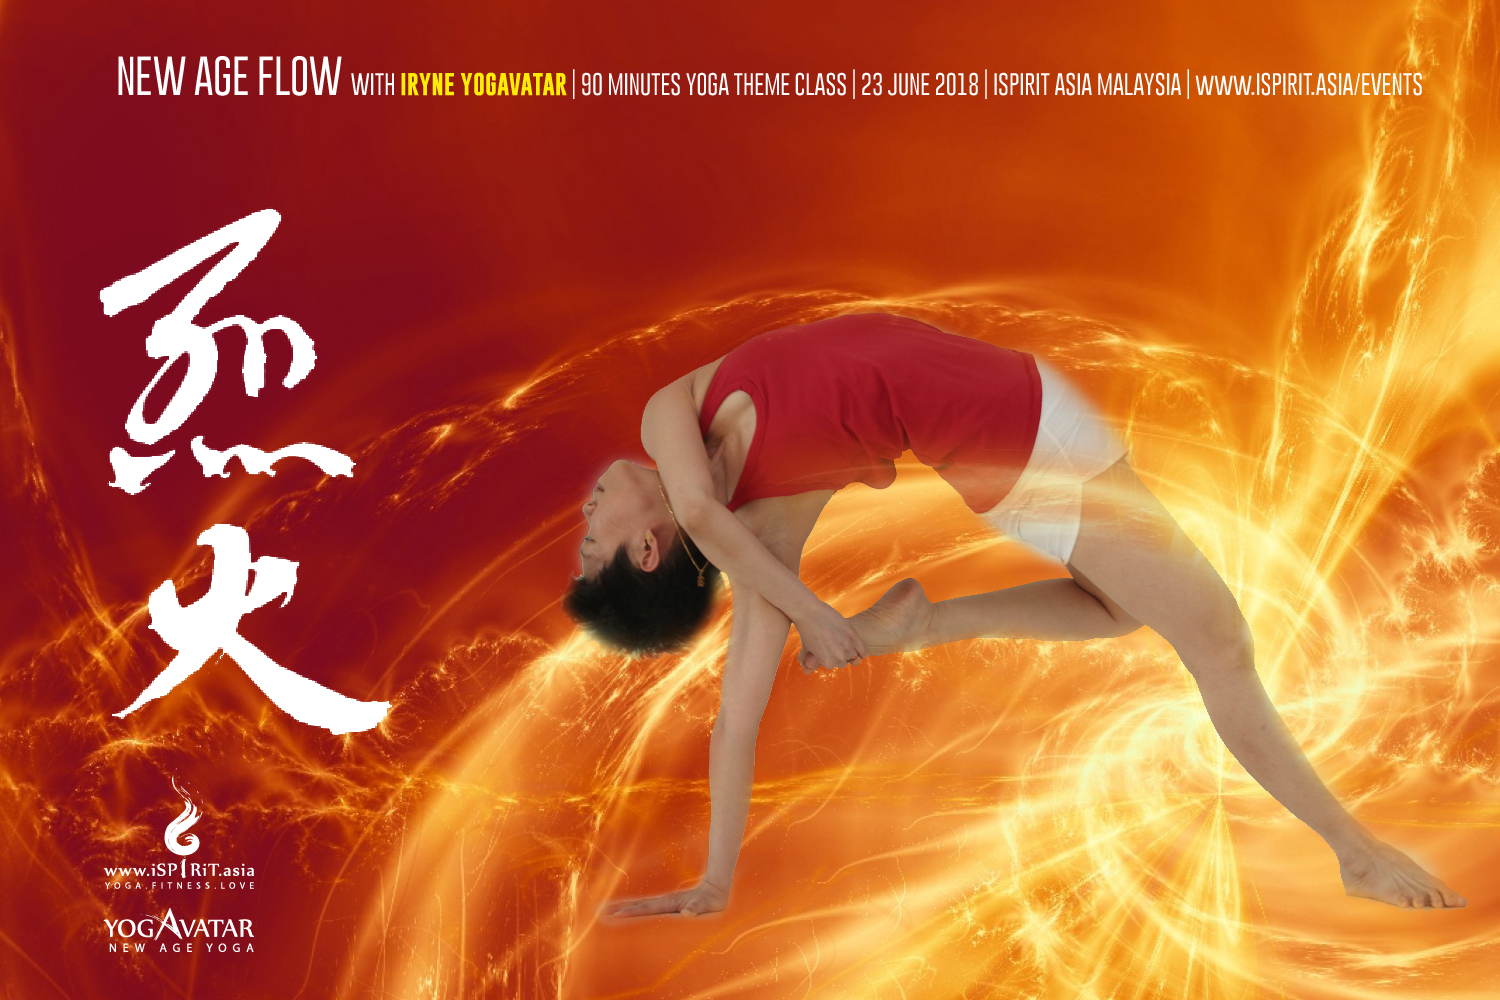 Fire New Age Flow Yogavatar